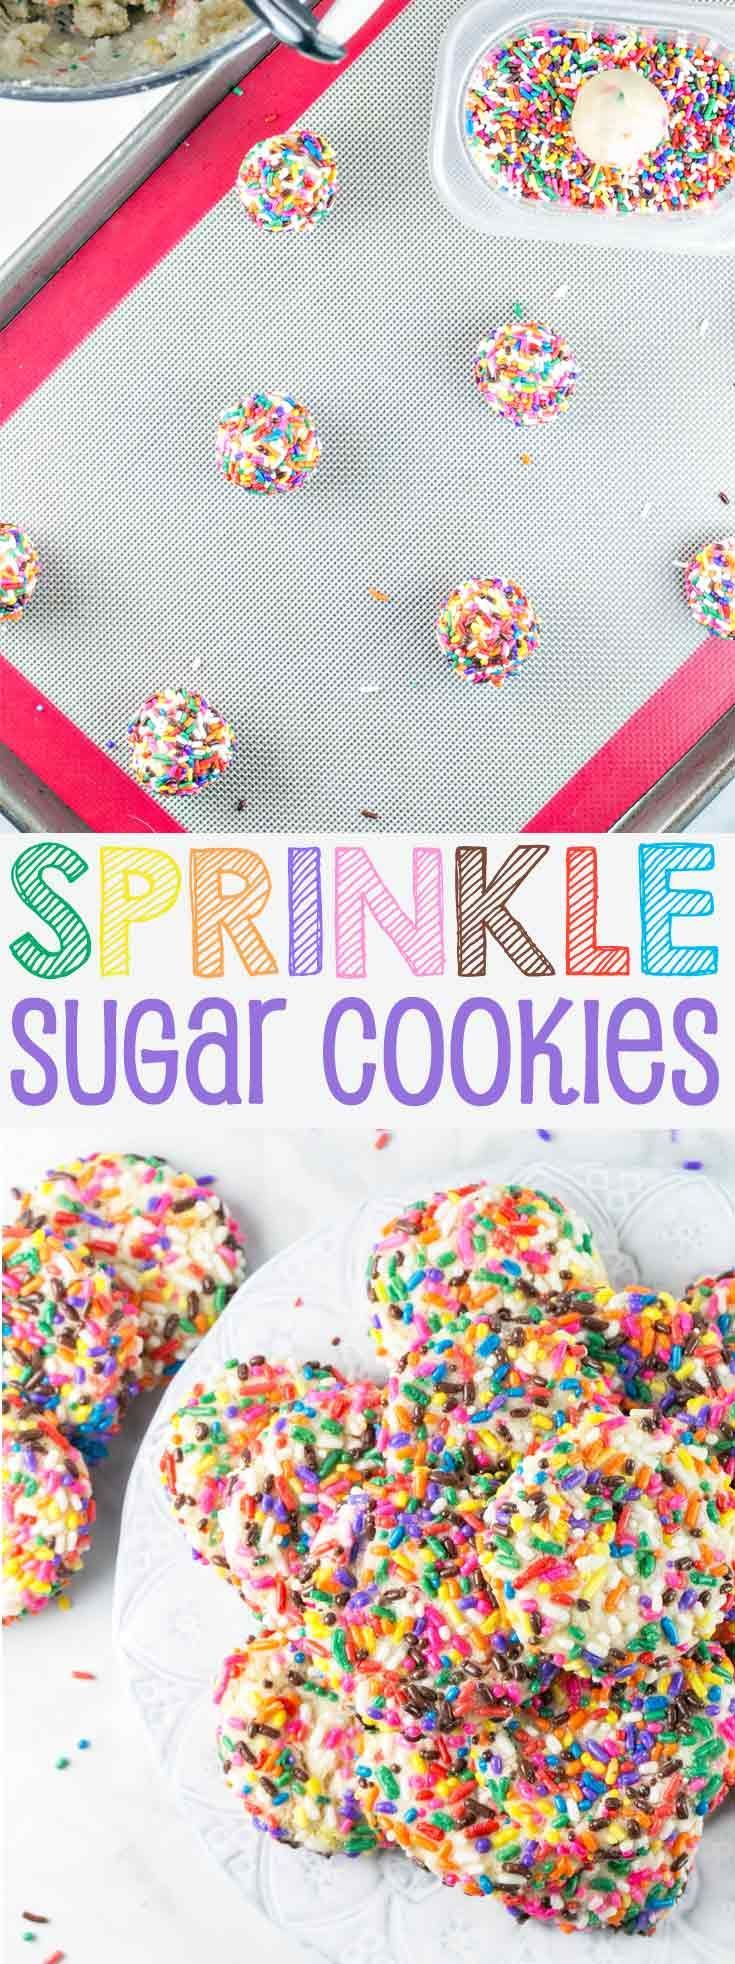 986 best Cookie Recipes images on Pinterest | Biscuits, Baking ...